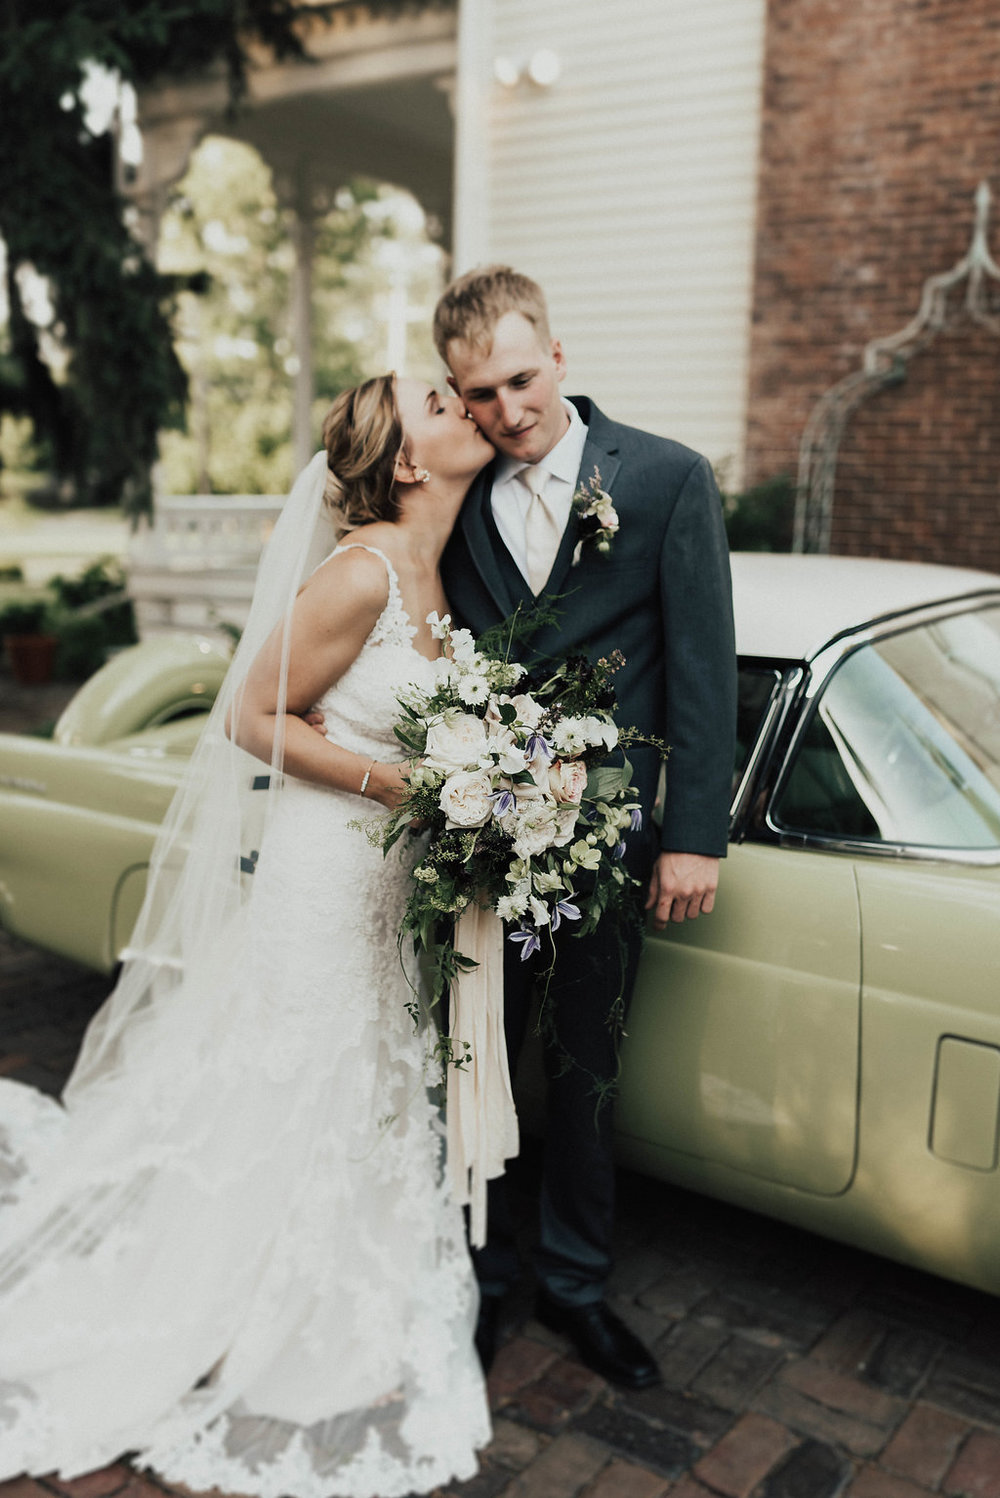 Champaign Illinois Wedding Rentals Spruce Rentals Lauren Fotography Fancy Florals by Nancy Adore Bridals Bremer Jewelry